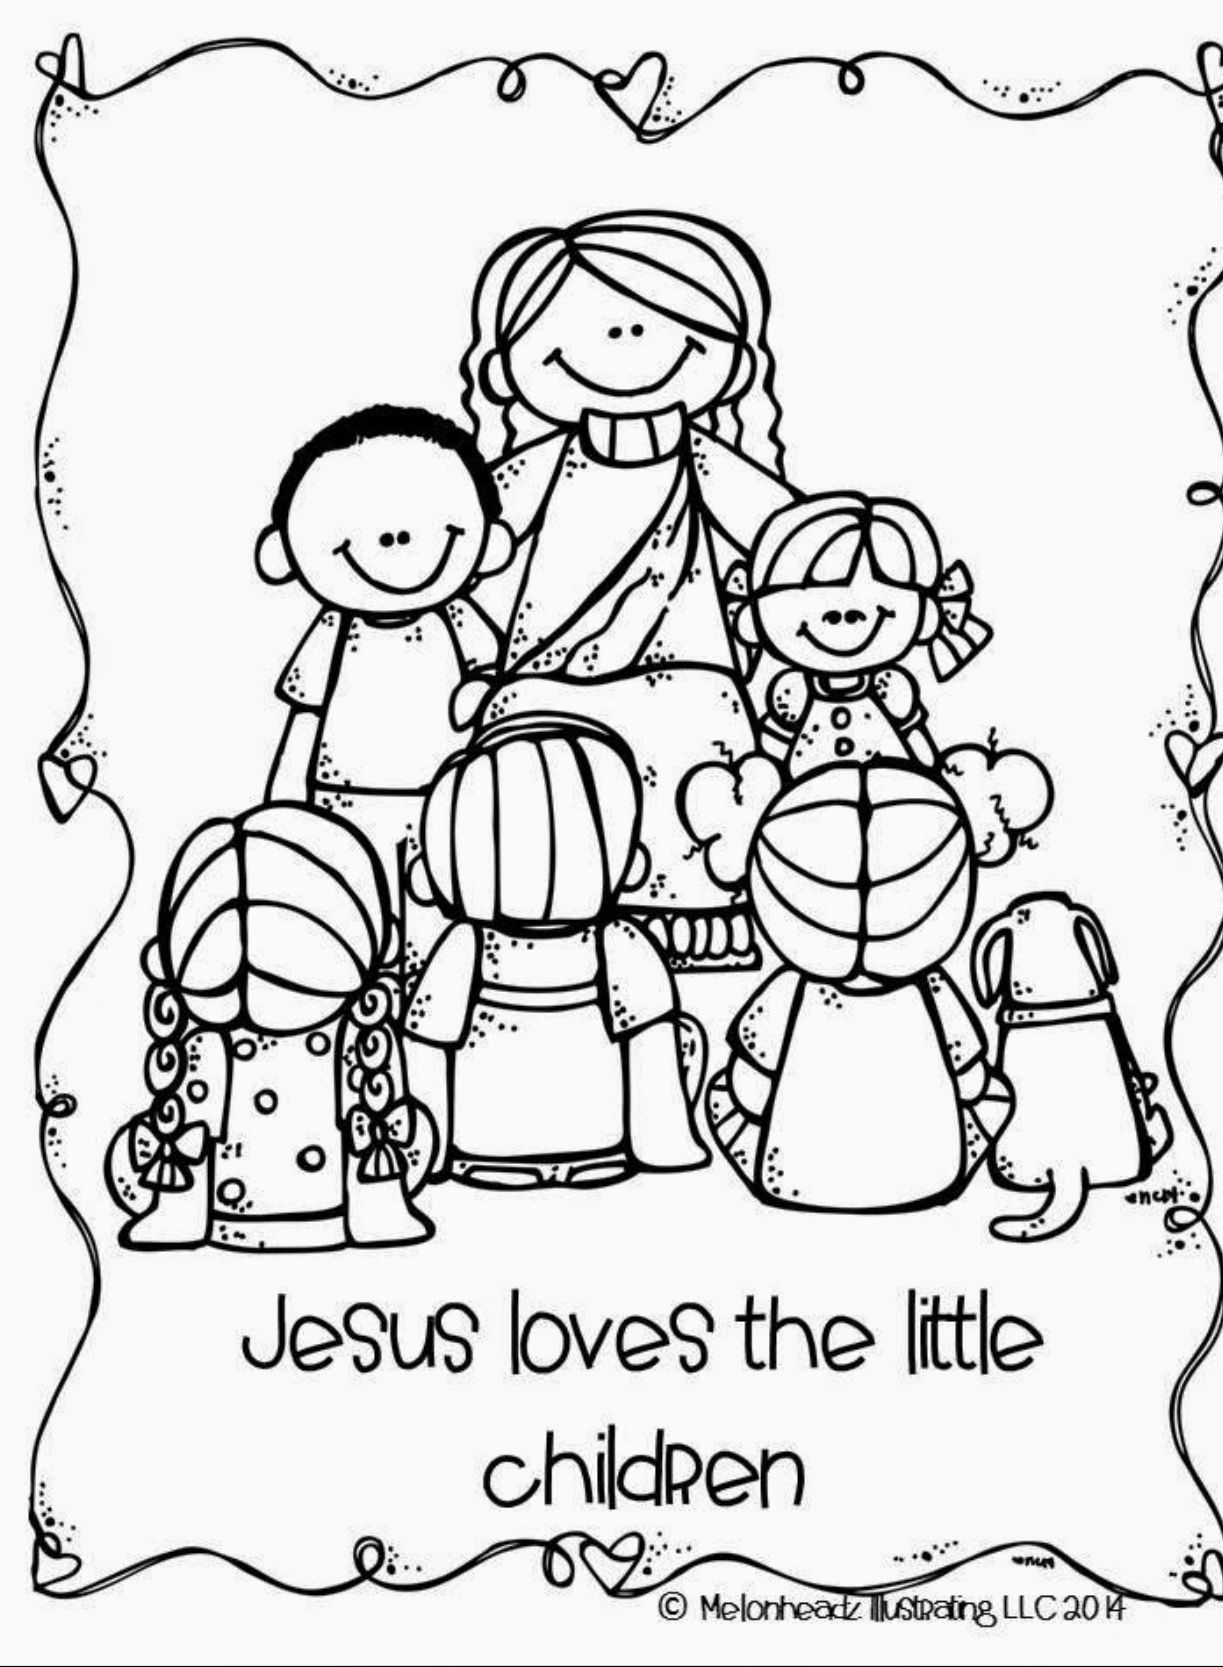 Pin de Darlene Twymon en CHILDREN Jesus loves the little | Pinterest